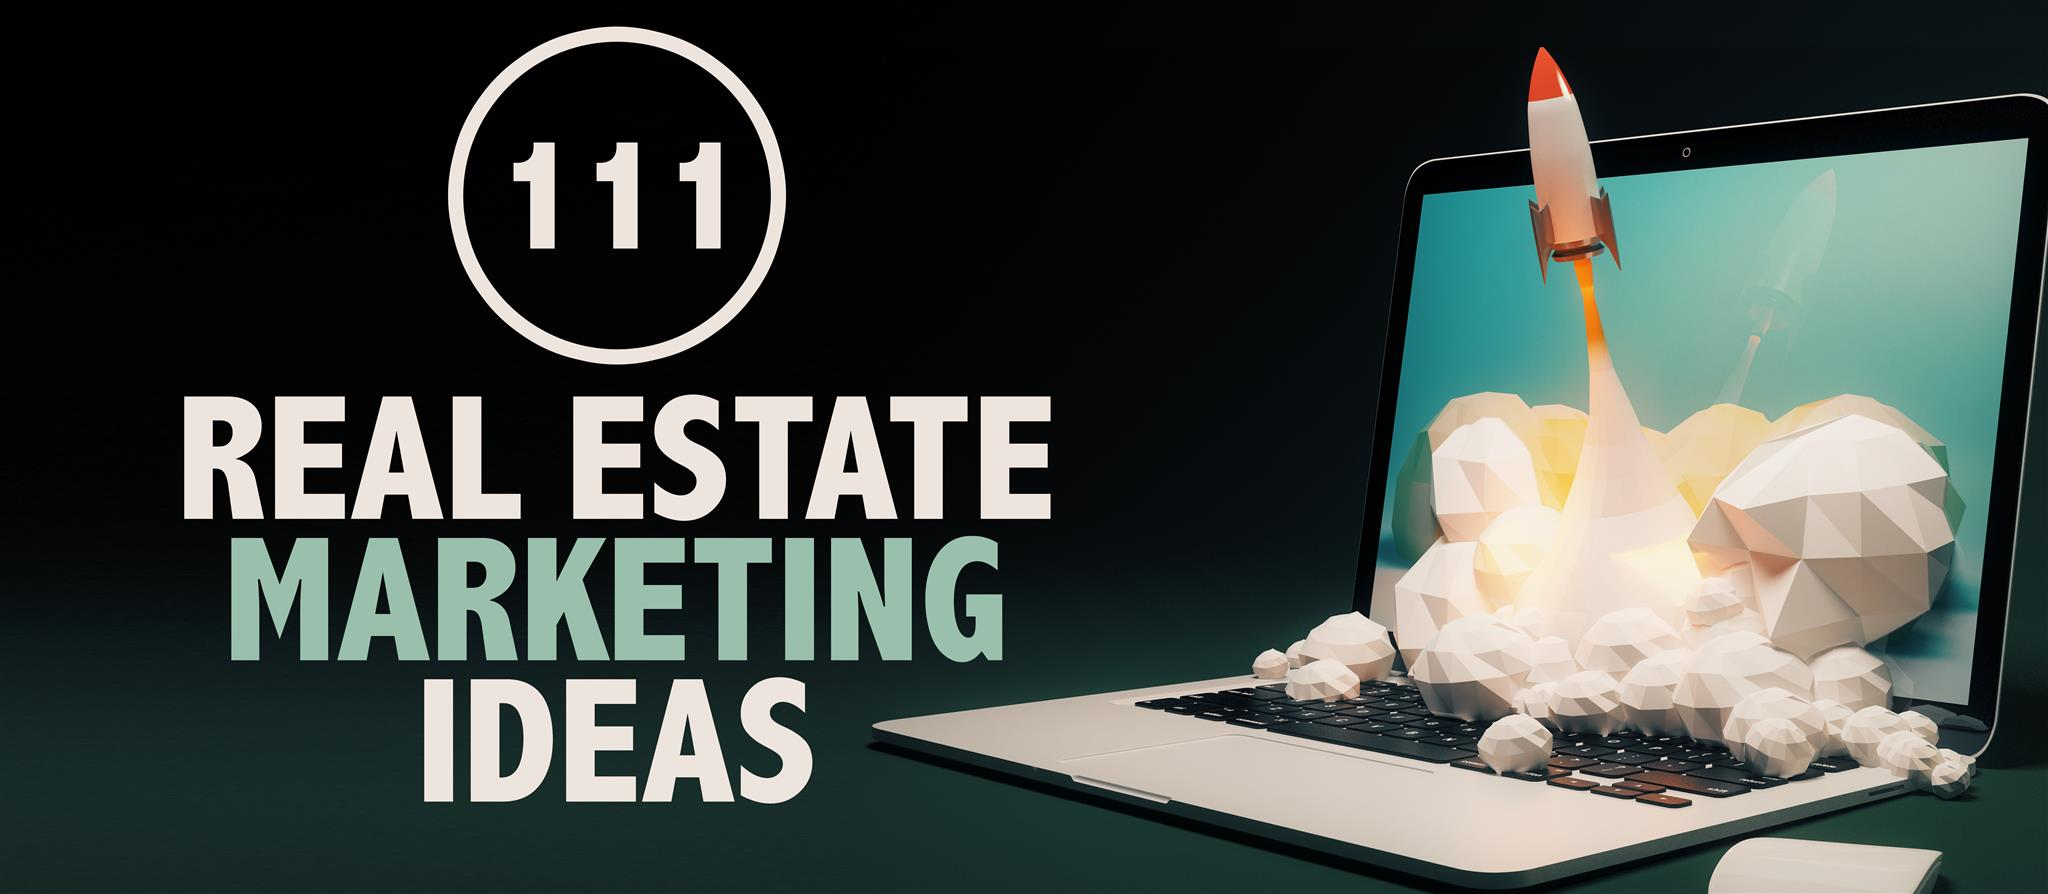 111 real estate marketing ideas that work